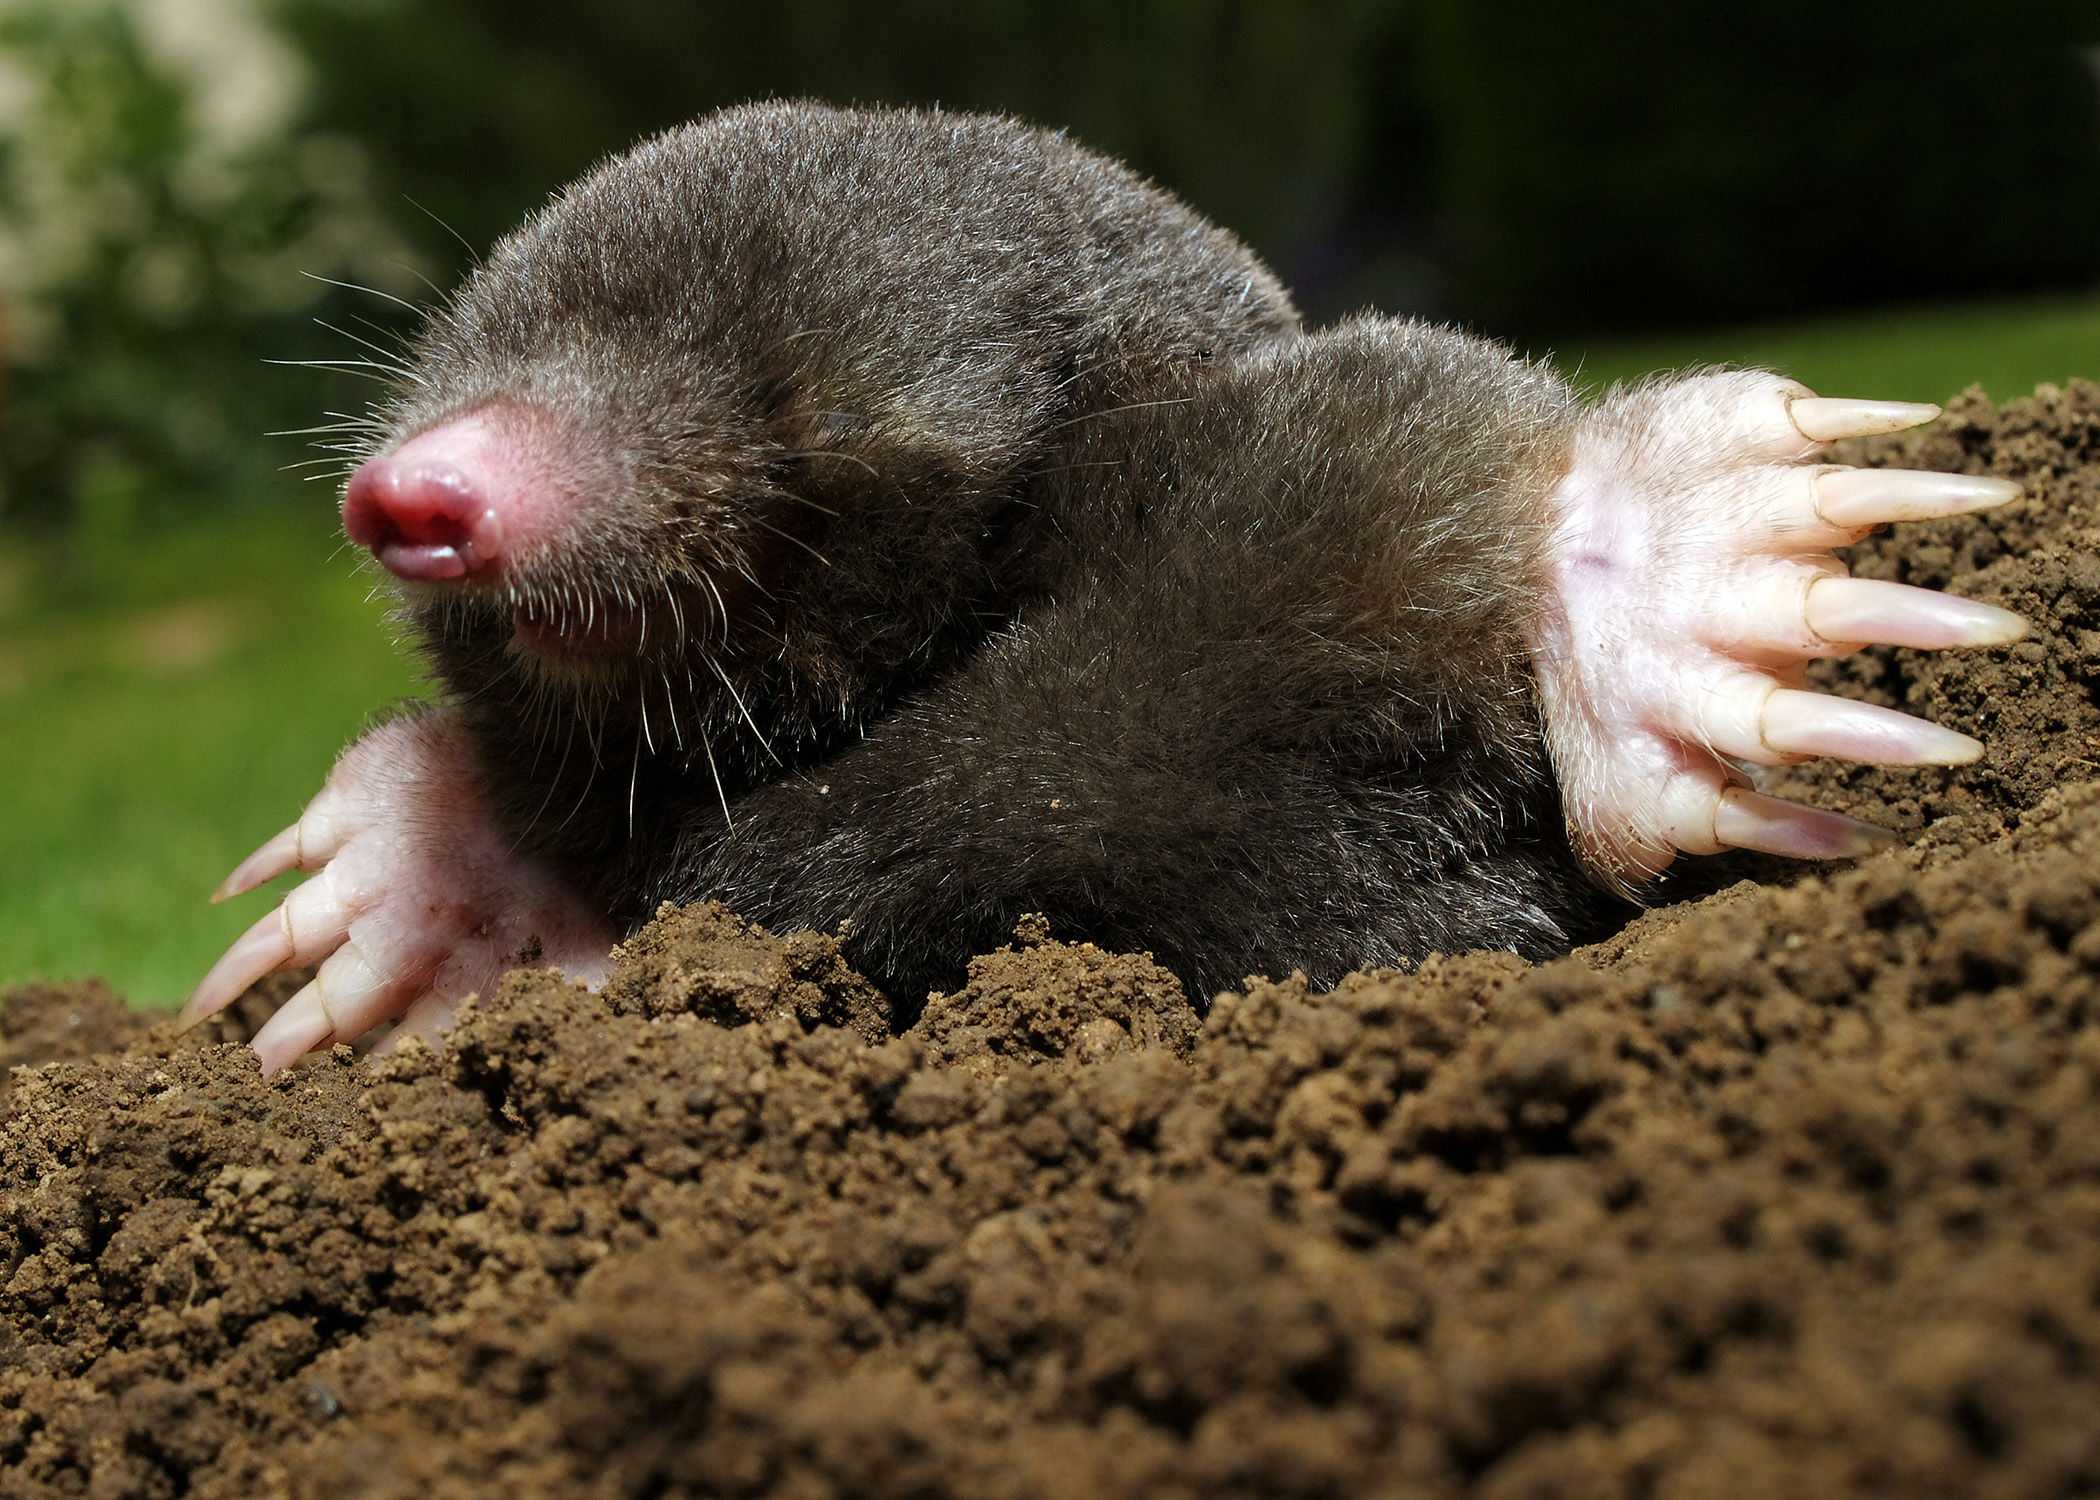 How to get rid of ground moles - Moles Spend 90 Percent Of Their Lives Underground They Are Known For Their Hairless Snouts